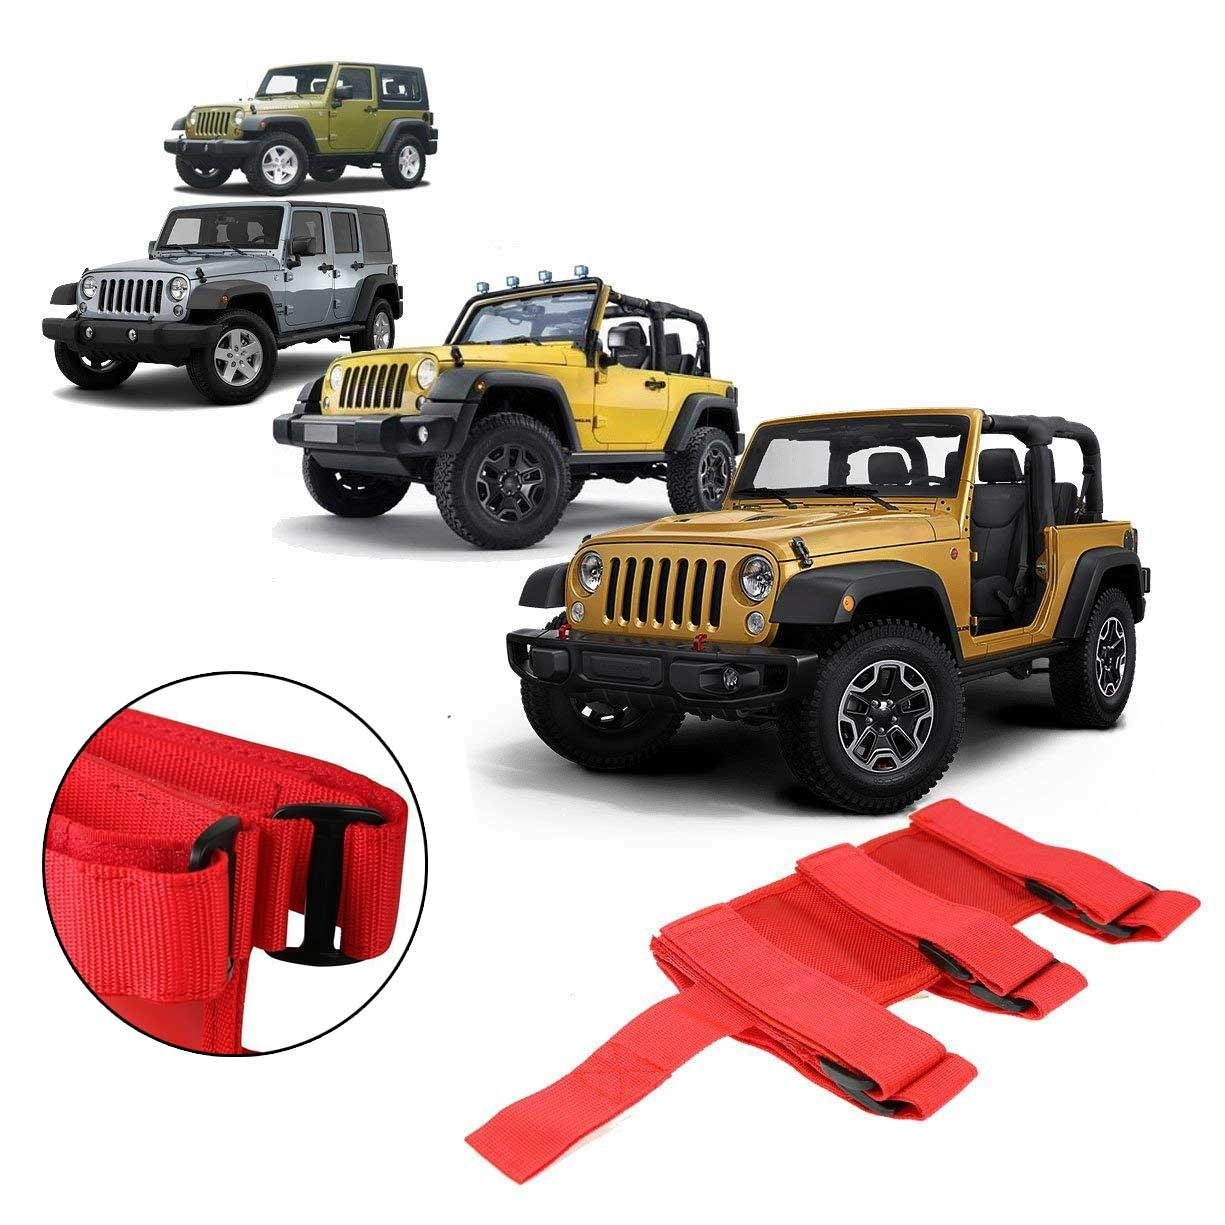 RUNGAO Car Fire Extinguisher Fixed Holder Fit For Jeep Wrangler Auto Adjustable Roll Bar